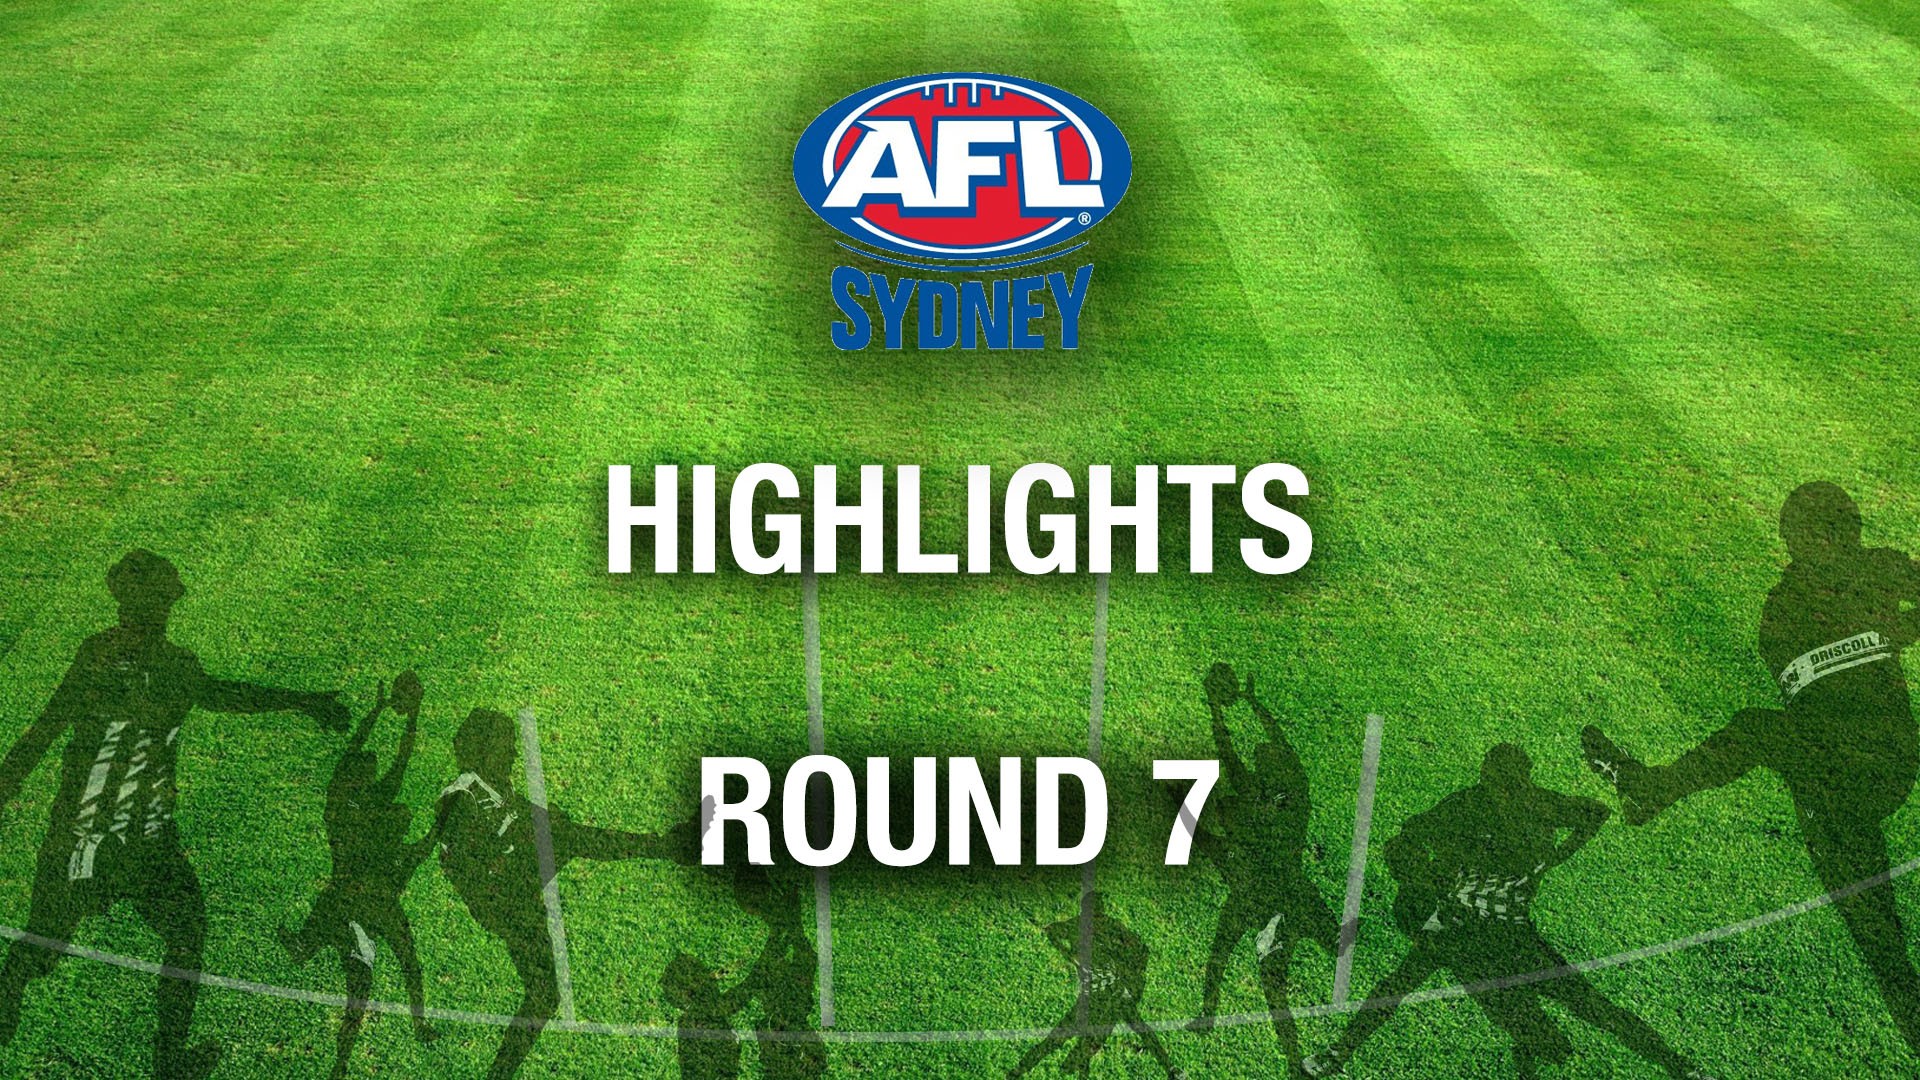 AFL SYDNEY 2018 RD7 HIGHLIGHTS